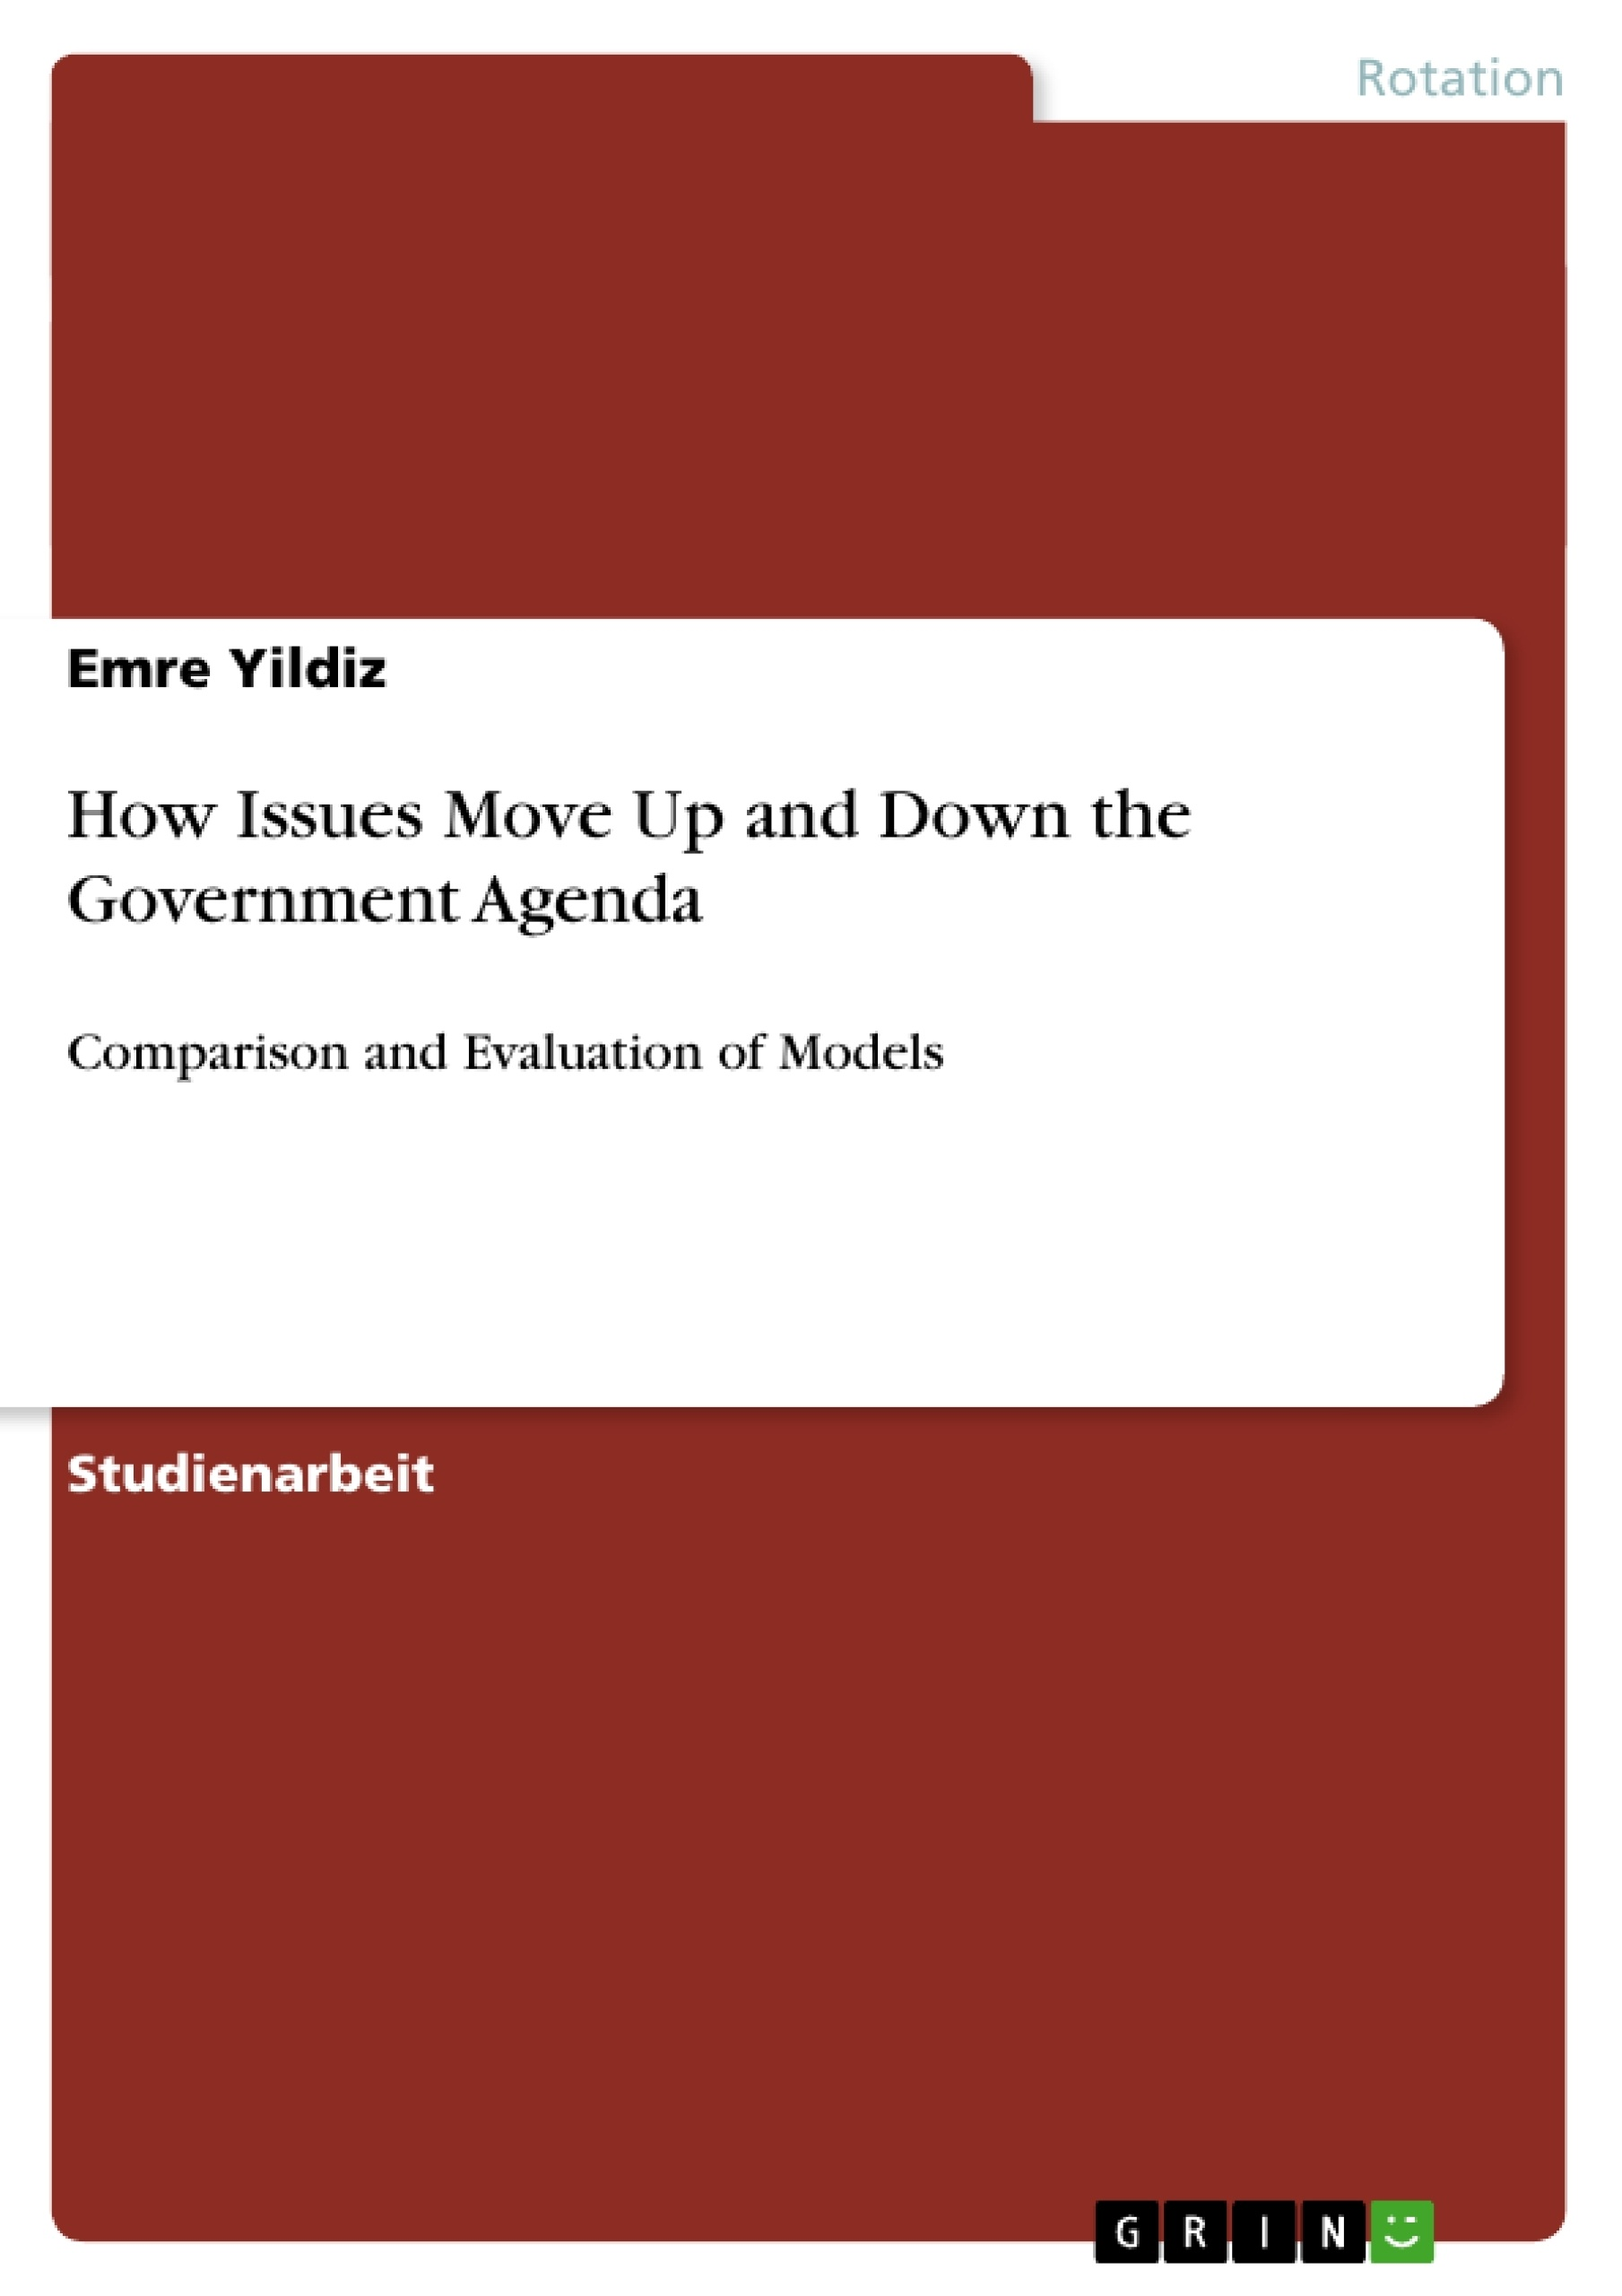 Titel: How Issues Move Up and Down the Government Agenda